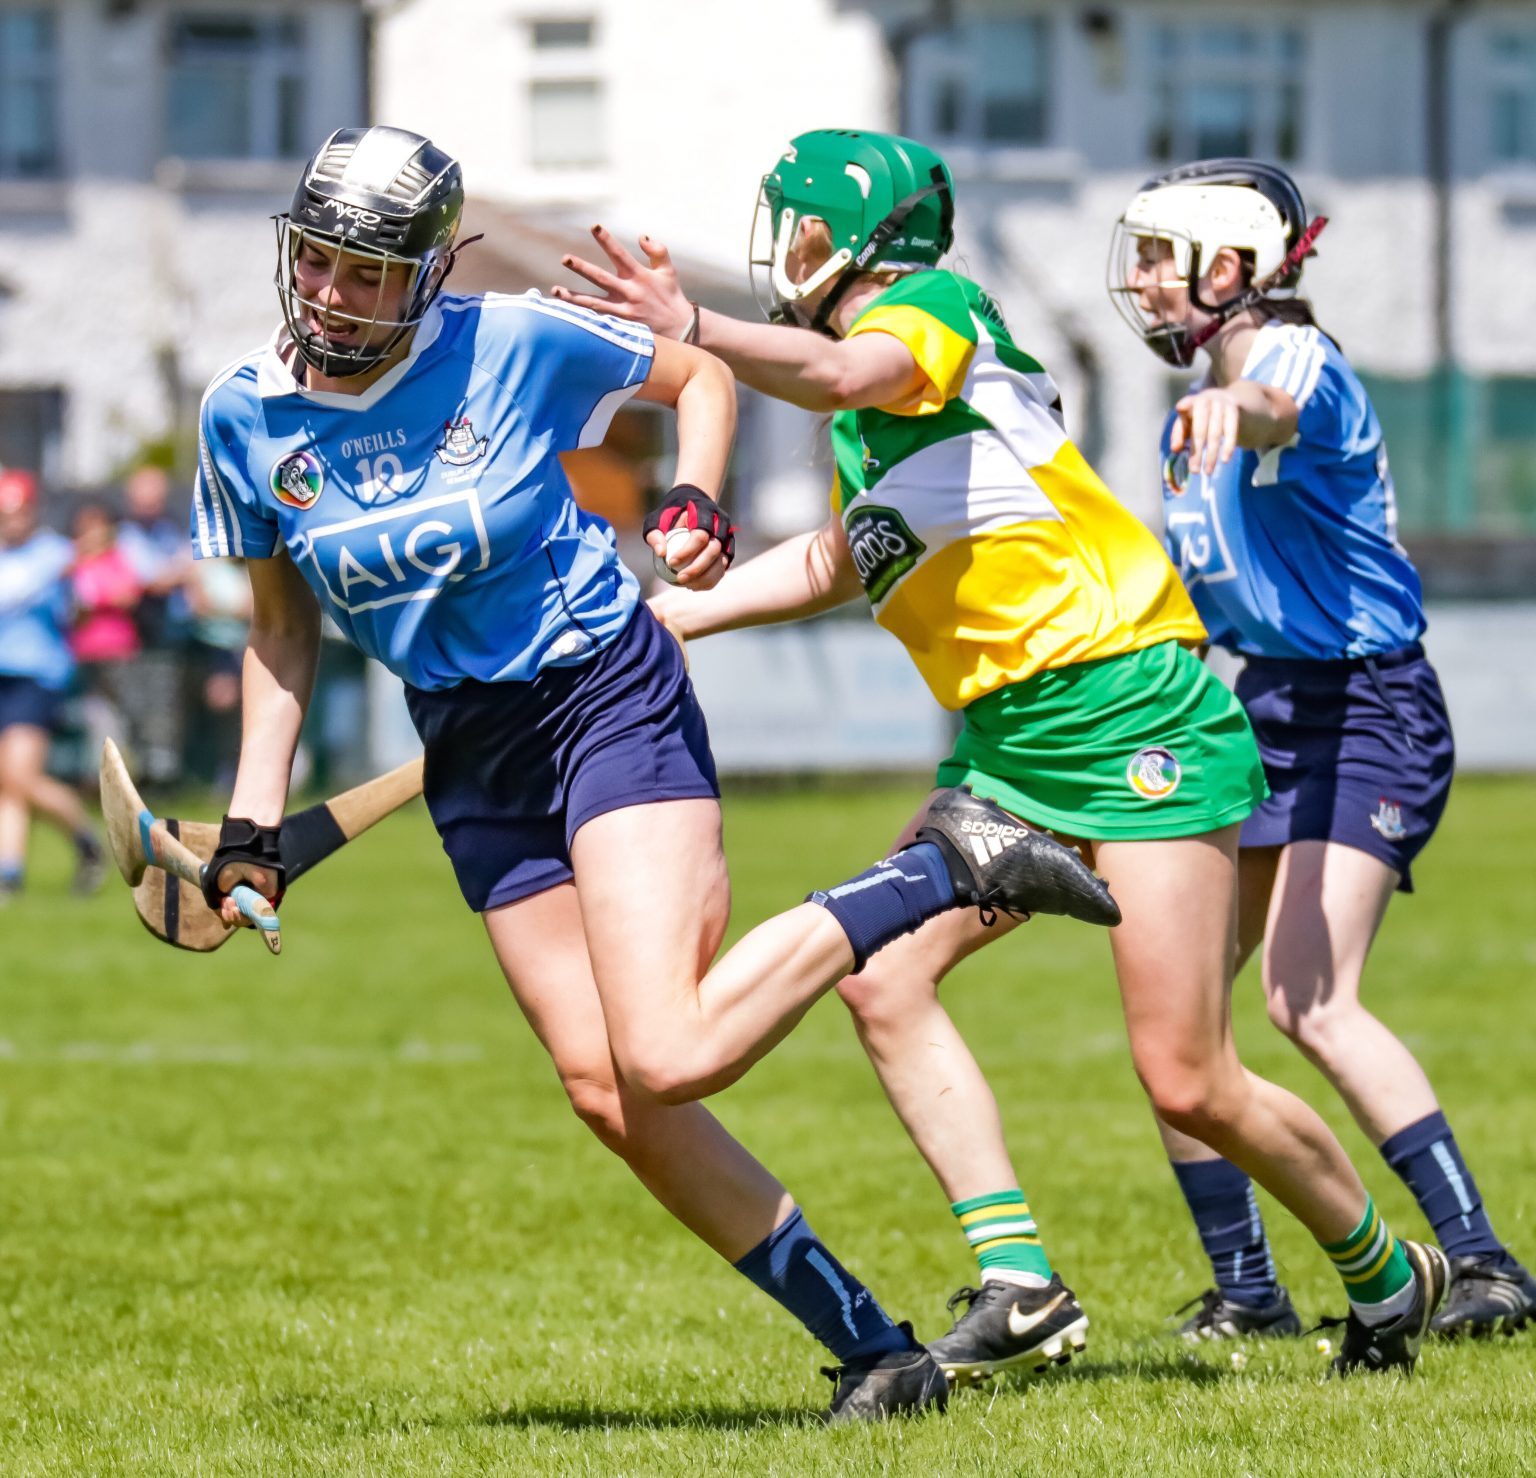 Dublin Camogie Player Alex Griffin in a sky blue jersey breaks away from an Offaly defender in a green, white and yellow jersey as Dublin's Leinster heartache continued in their loss to Offaly